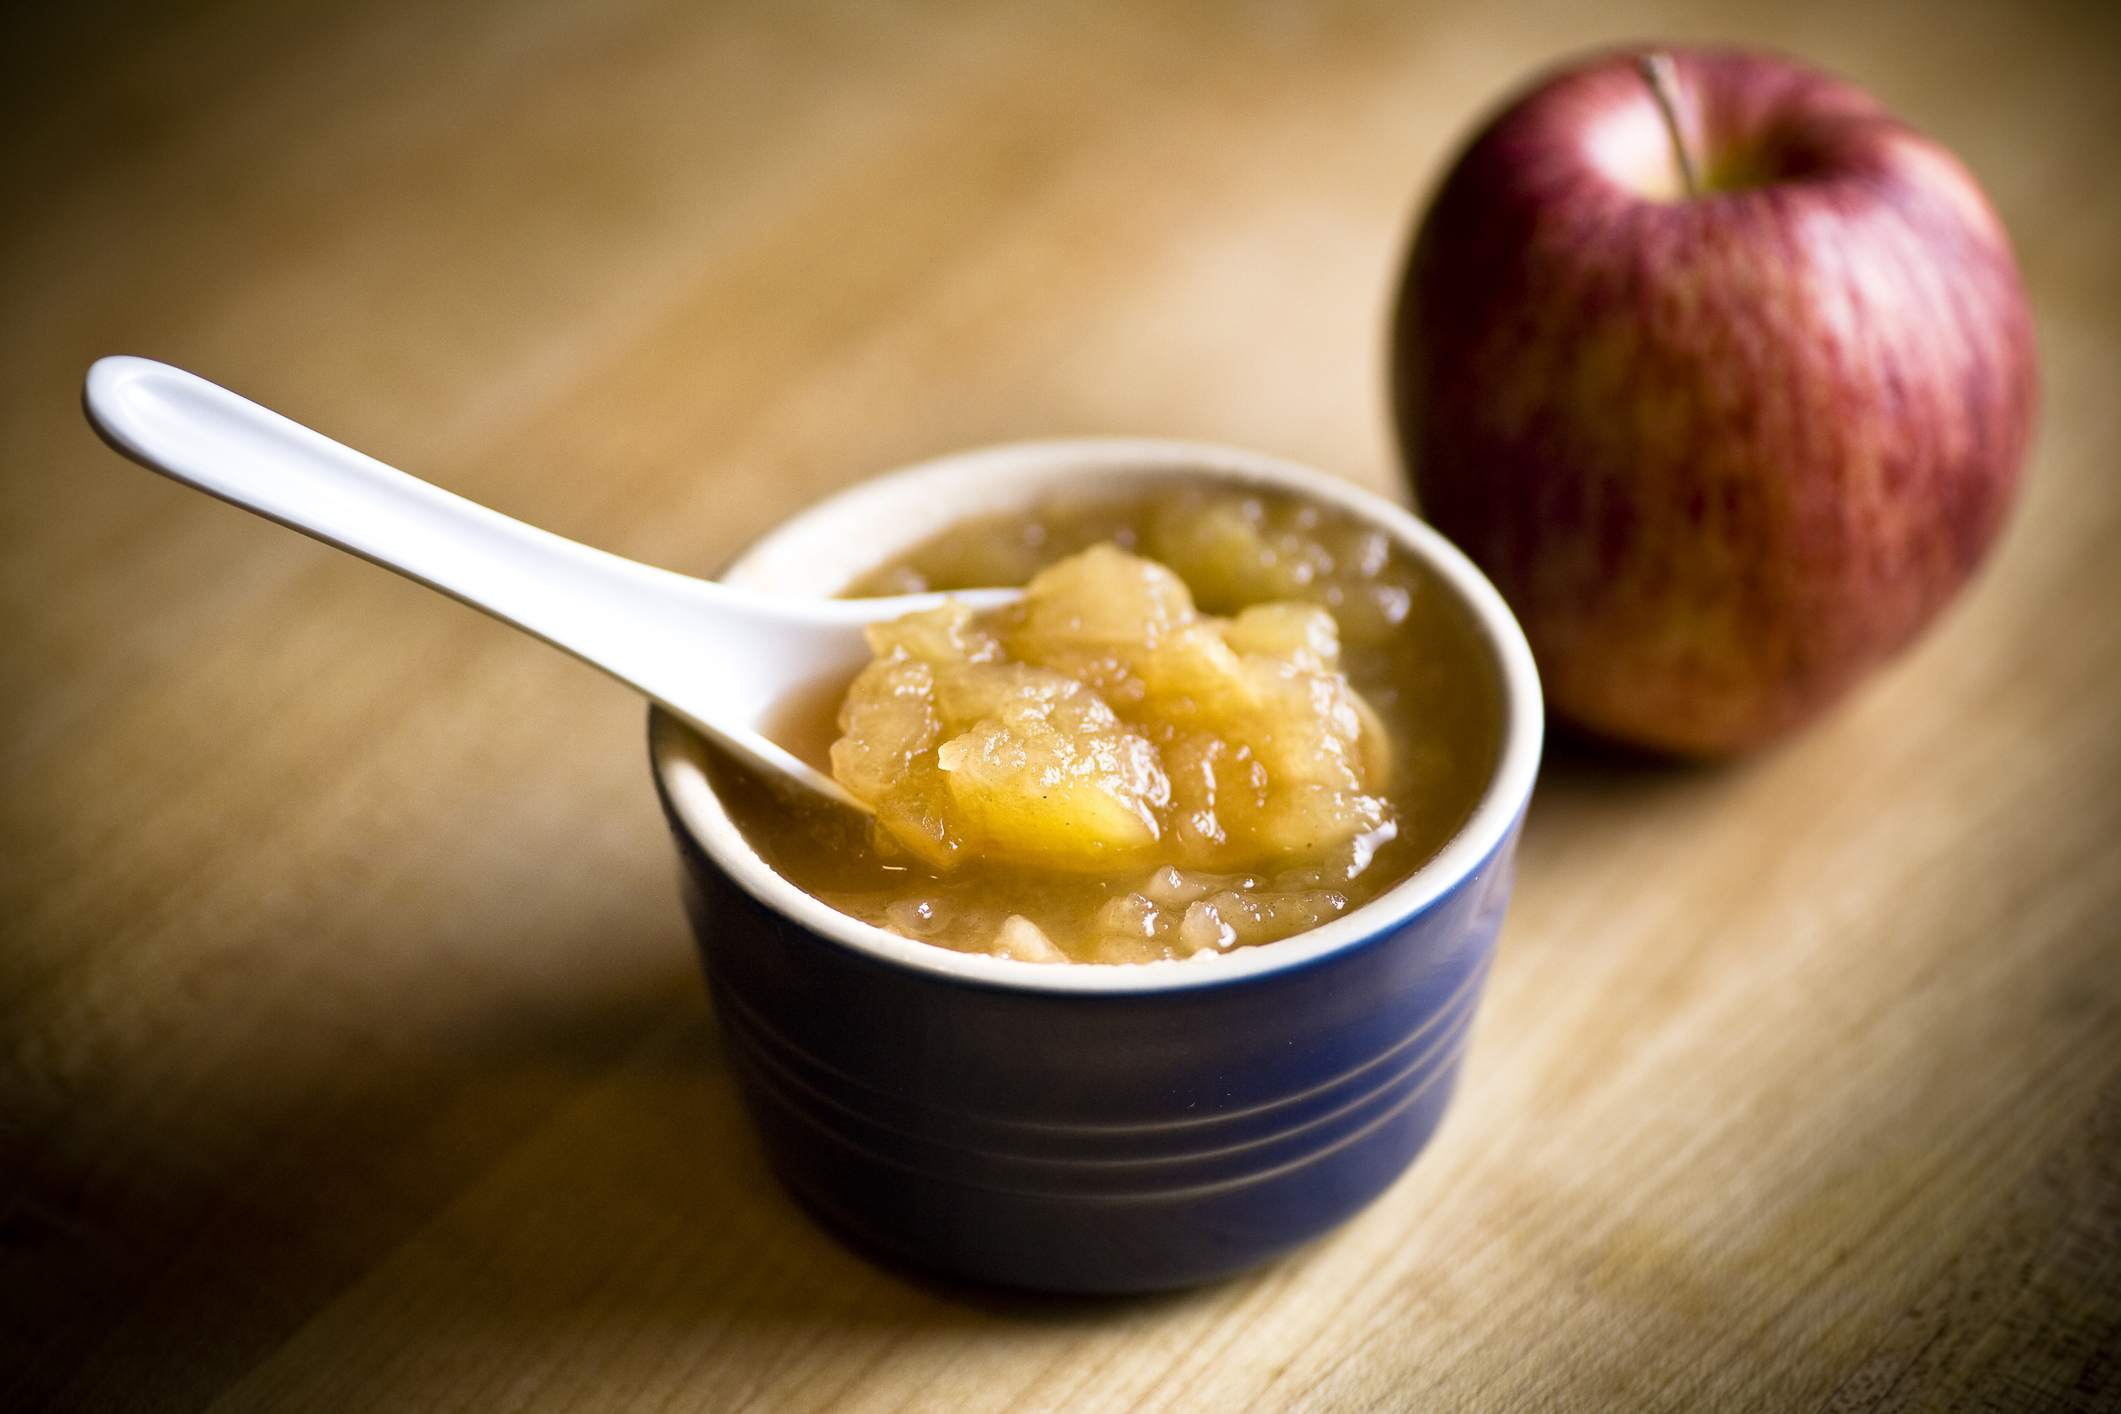 Home-made apple sauce in a blue dish next to a red apple on a wooden table.